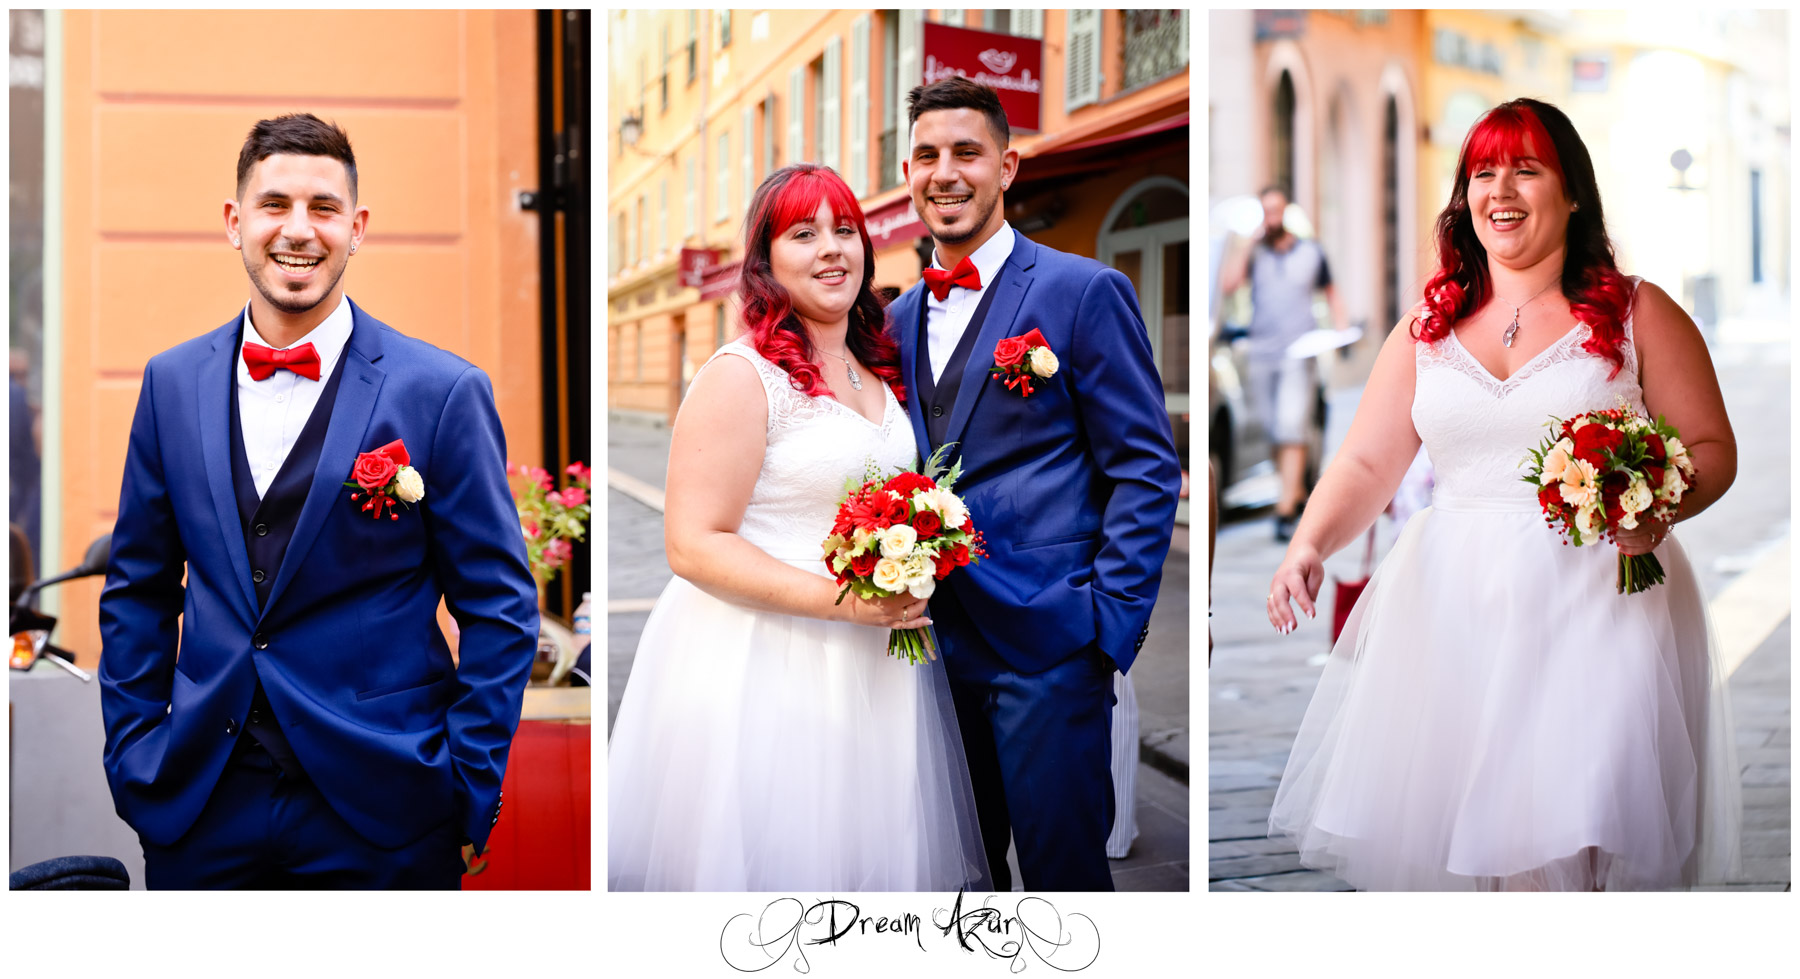 190824COMPO-Mariage-Cindy-et-Anthony-02